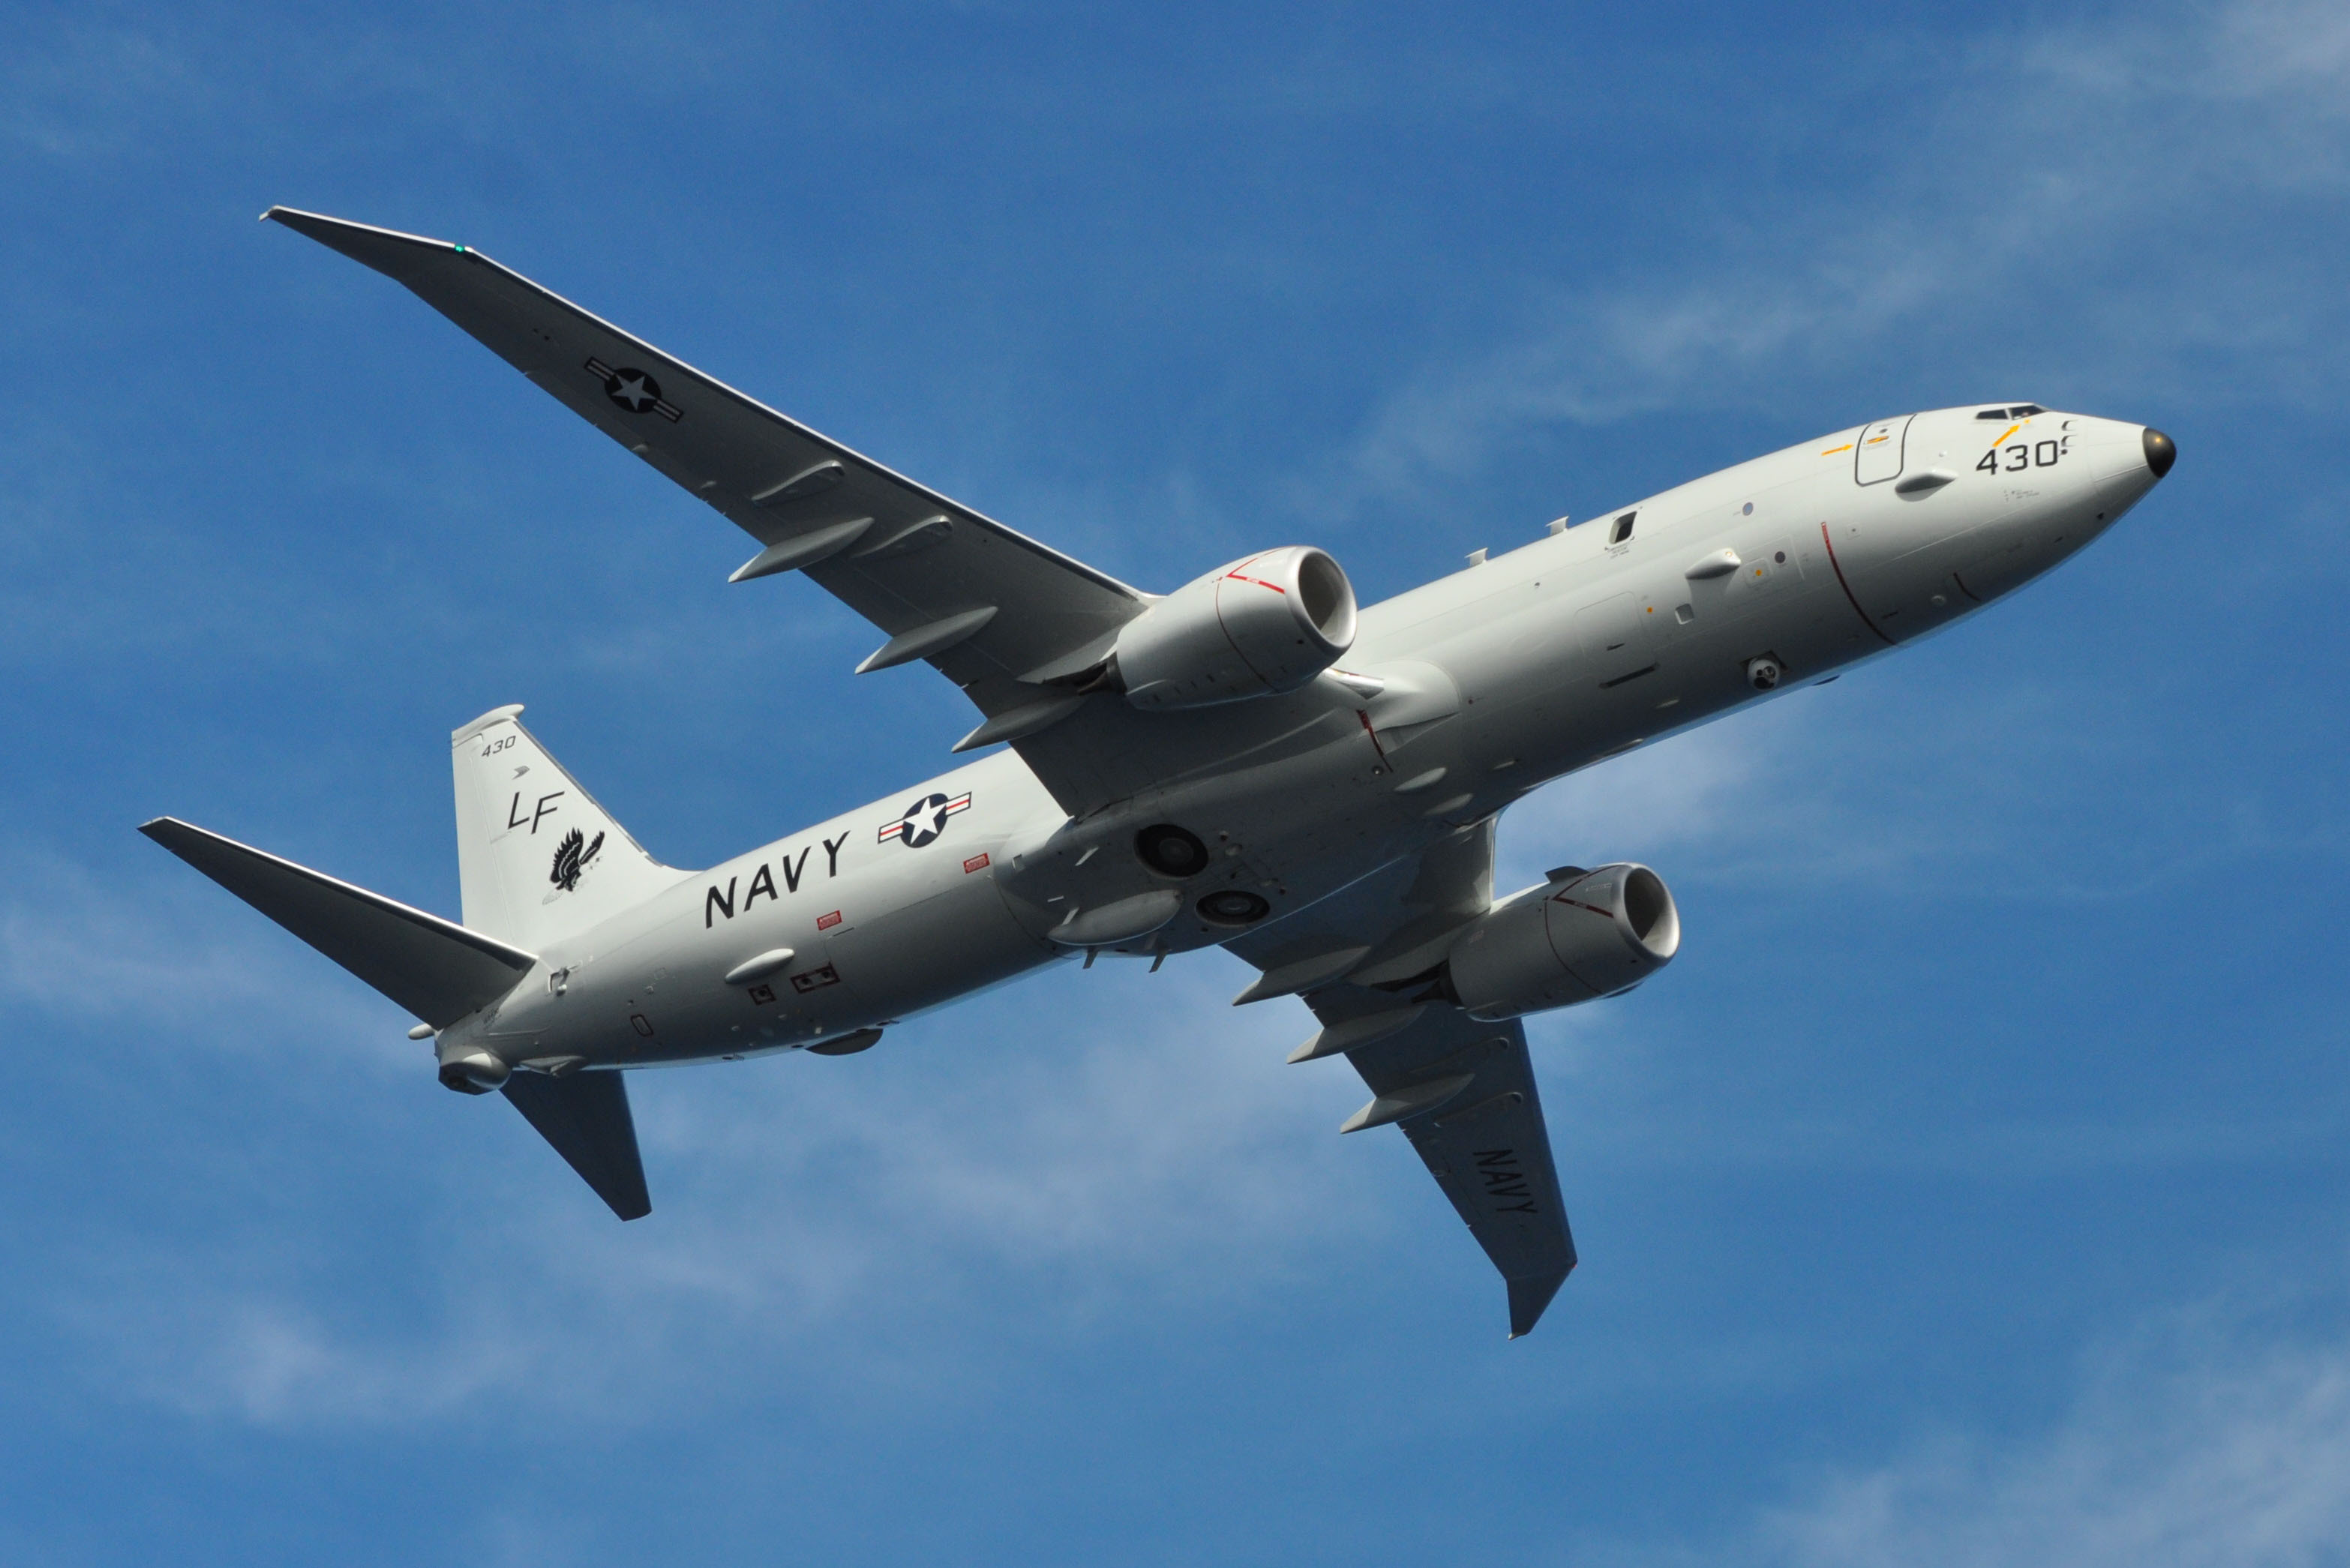 A US Navy P-8A maritime patrol aircraft flies over Jacksonville, Florida.